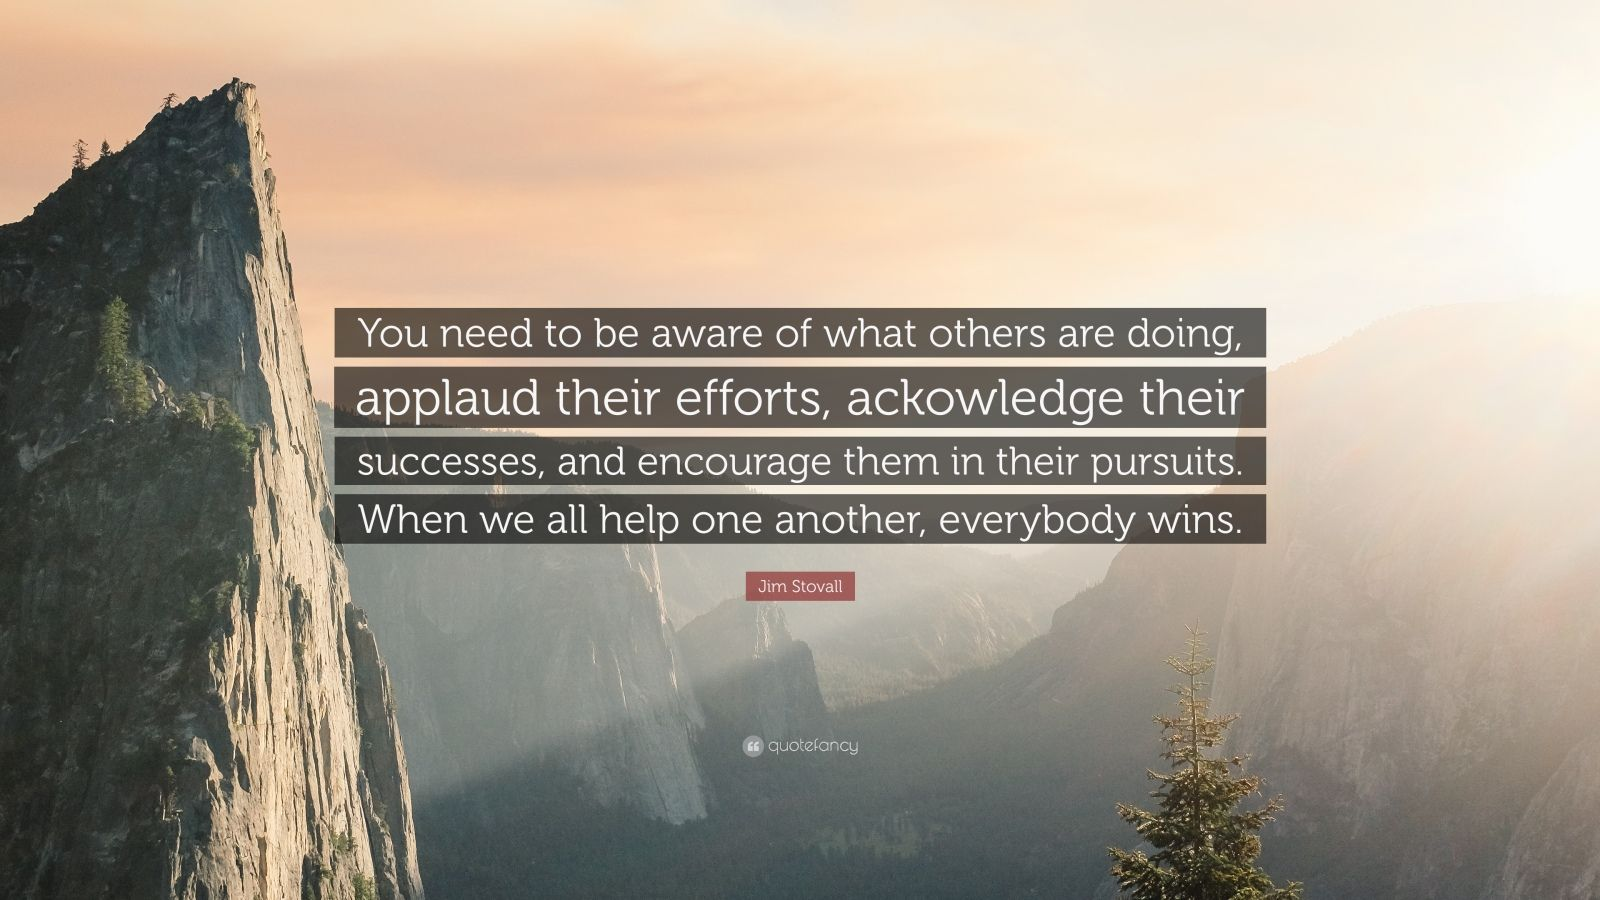 """Jim Stovall Quote: """"You need to be aware of what others are doing, applaud their efforts, ackowledge their successes, and encourage them in their pursuits. When we all help one another, everybody wins."""""""